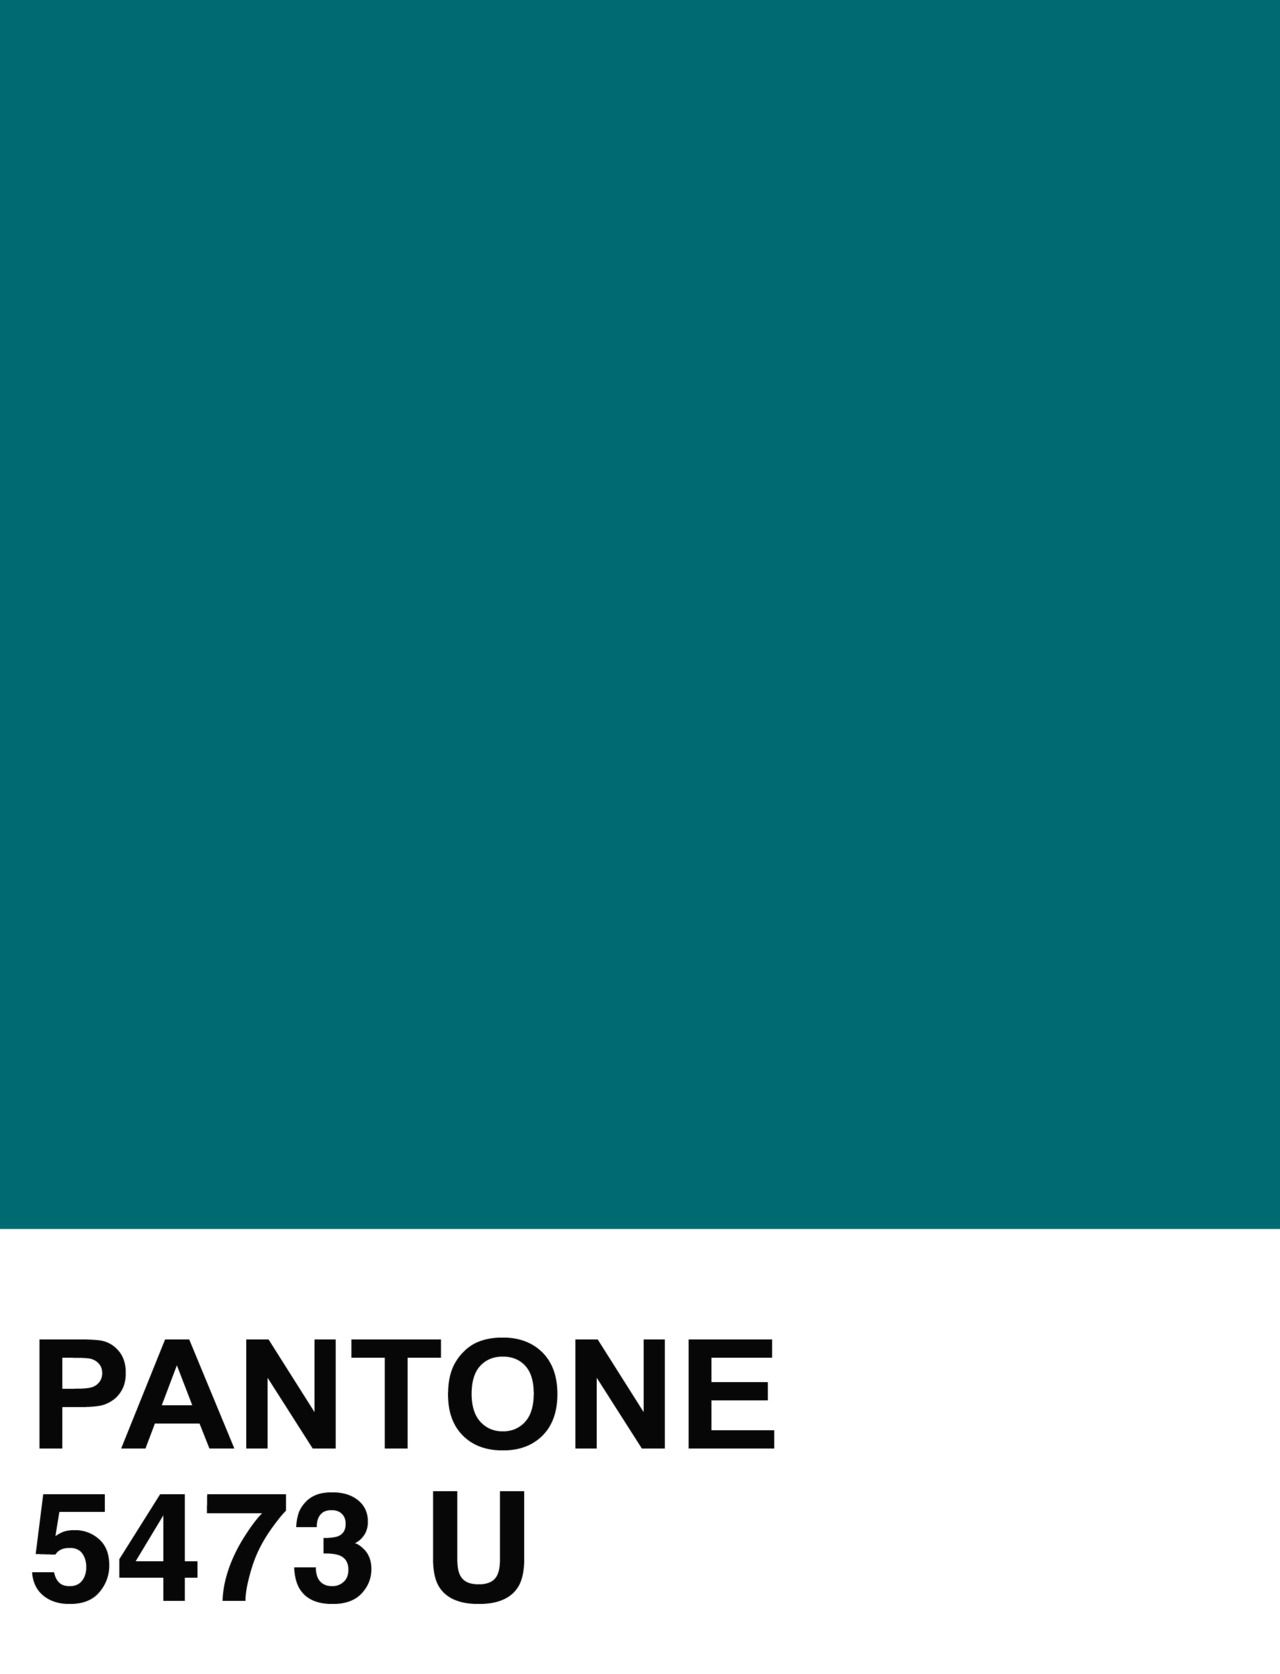 Pantone Solid Uncoated Photo